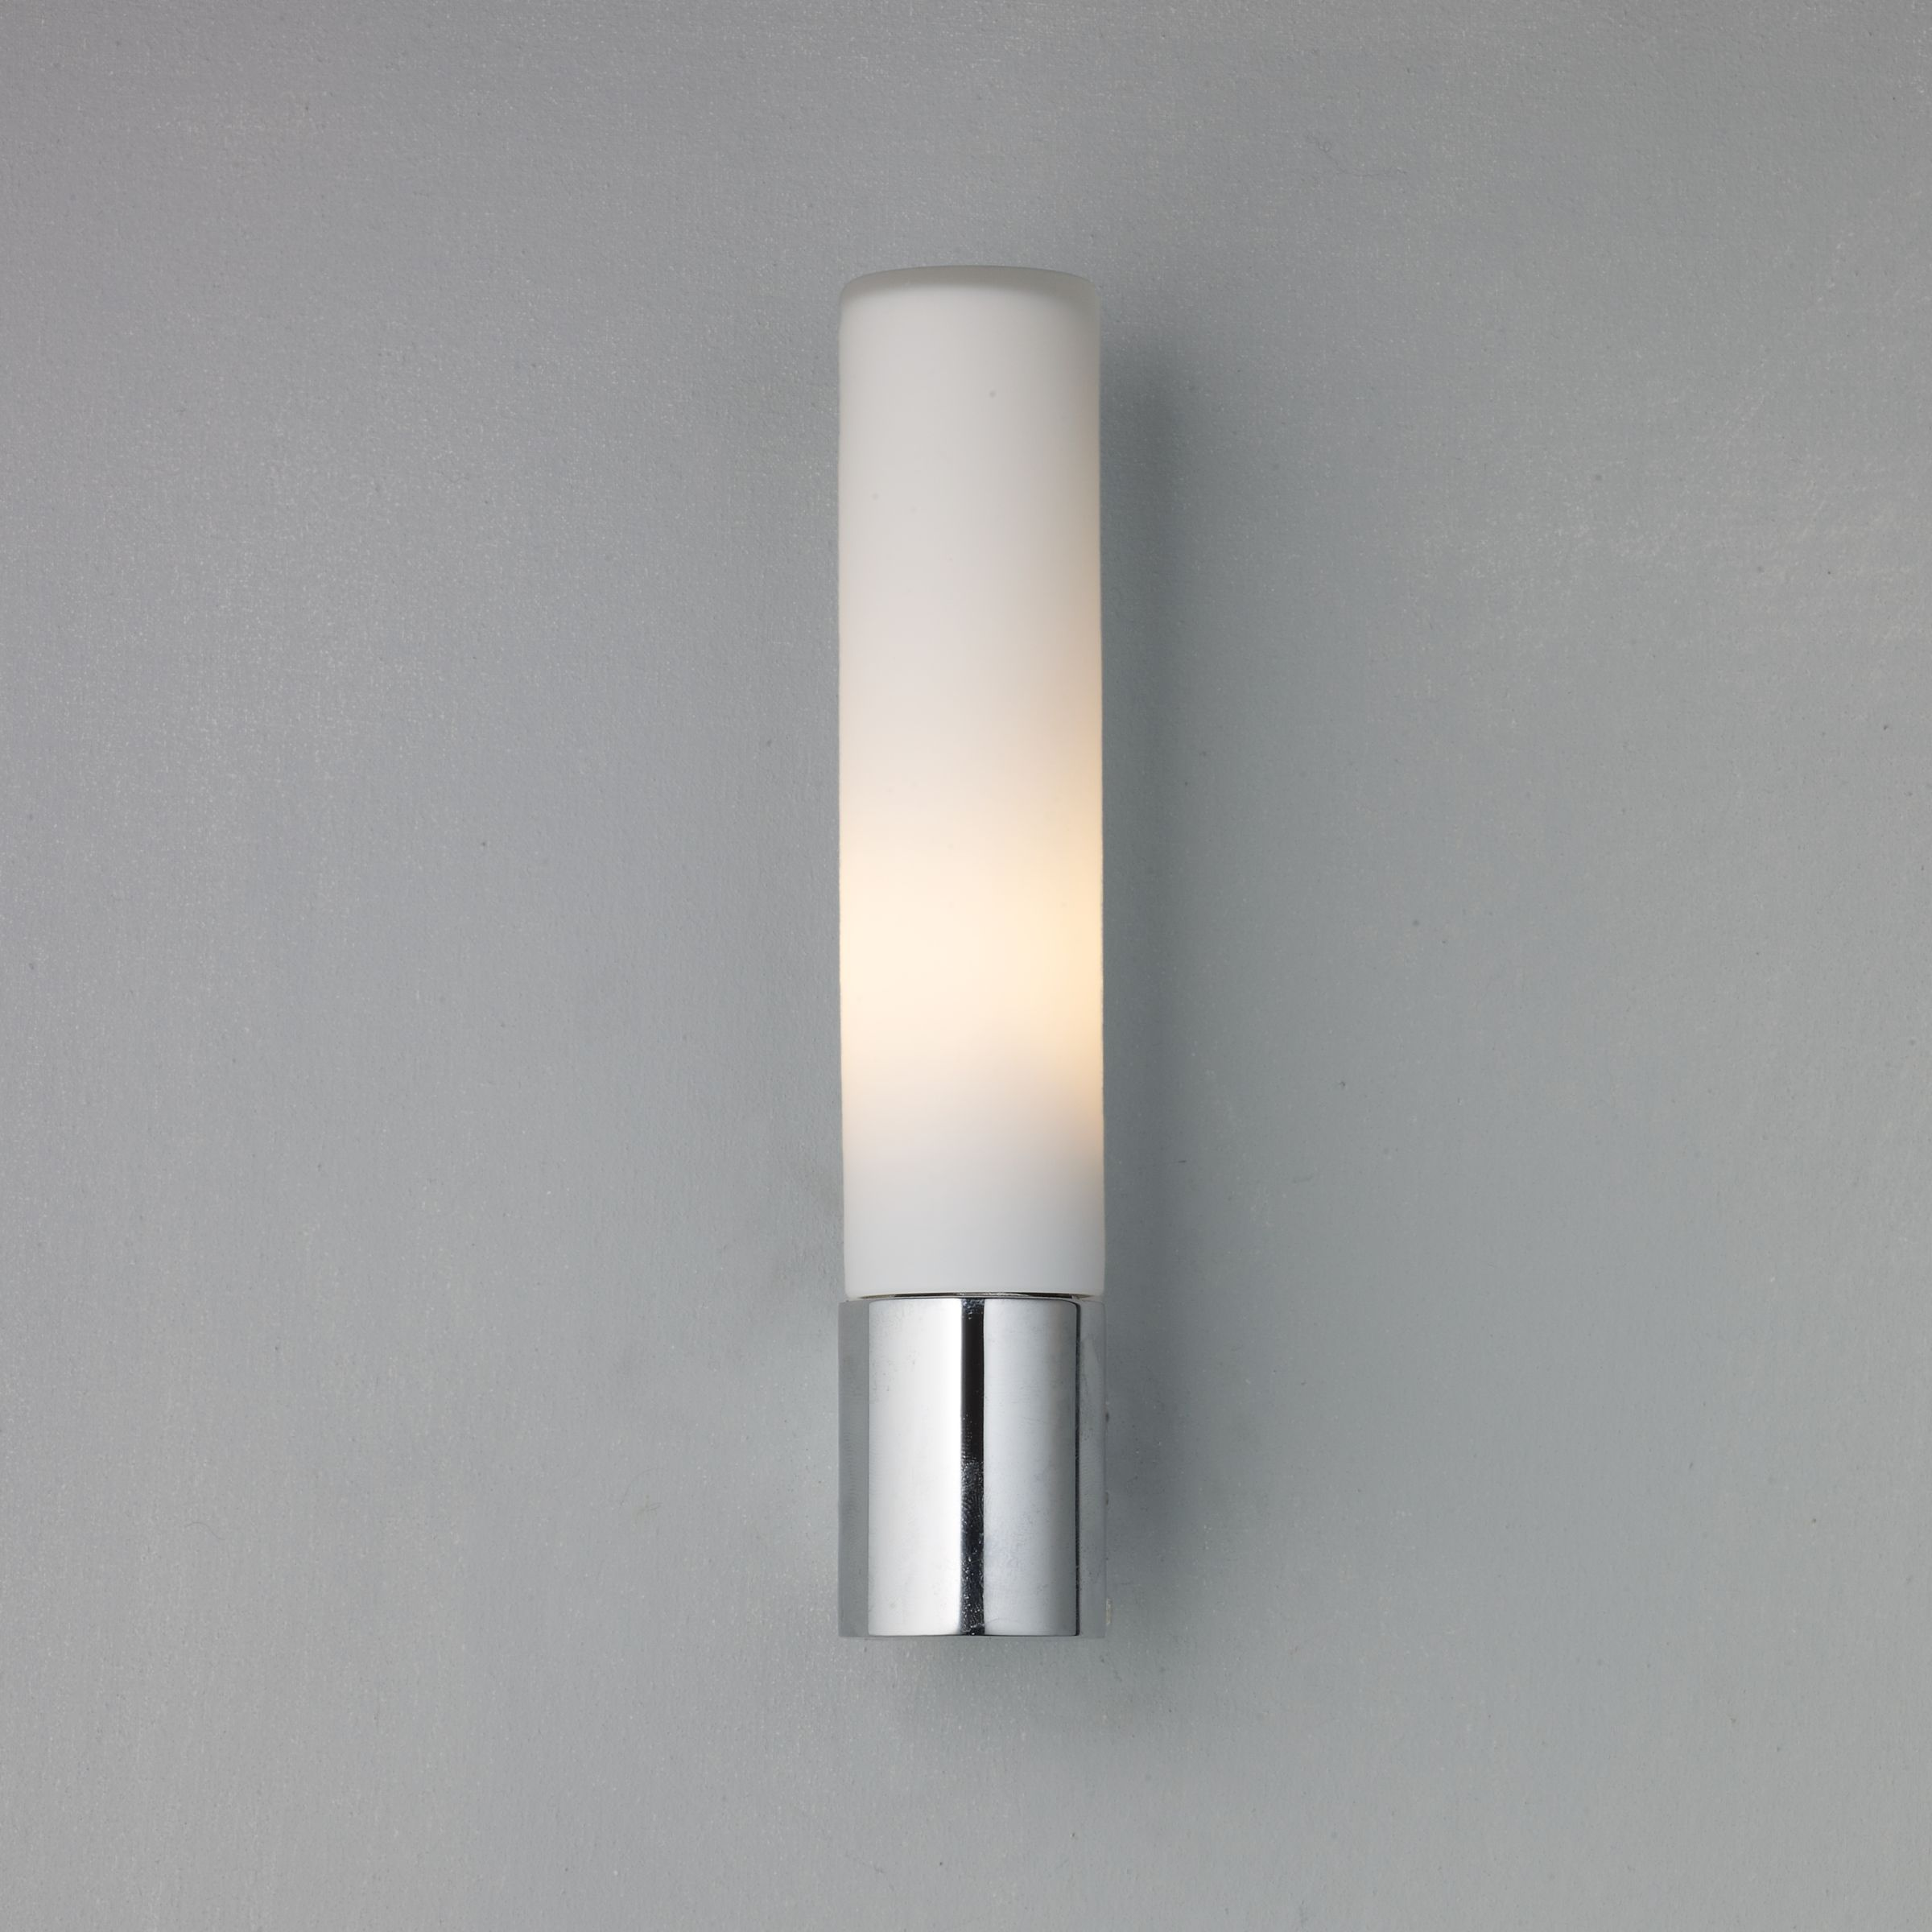 John Lewis Wall Lights Glass : Buy ASTRO Bari Bathroom Wall Light John Lewis